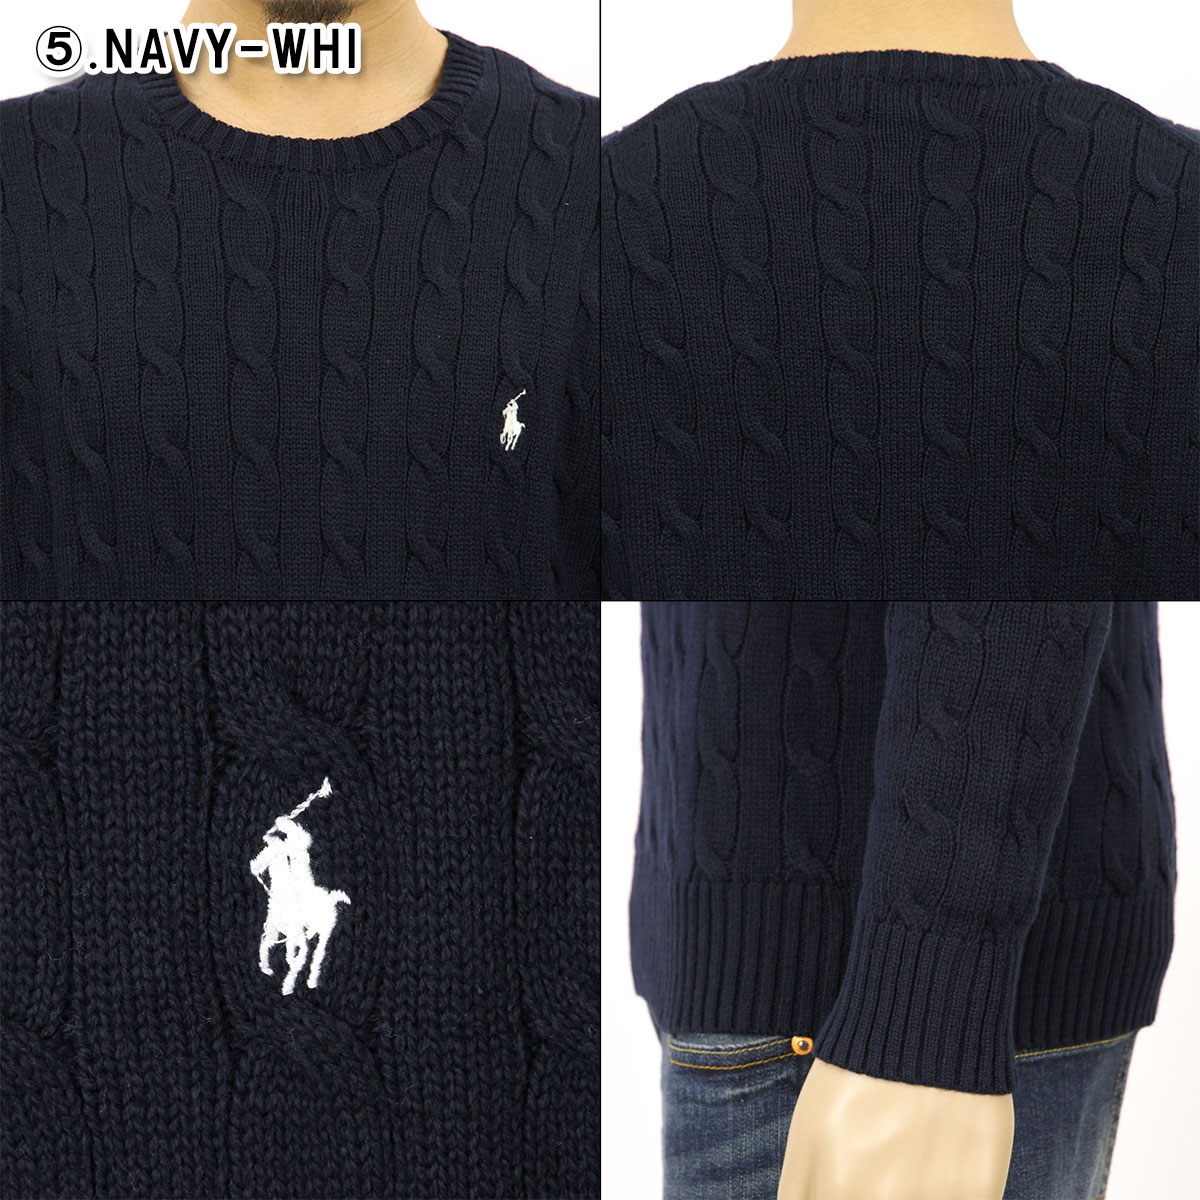 e85446f3e0f9d4 Polo Ralph Lauren POLO RALPH LAUREN regular article men one point cotton  cable knit sweater CABLE-KNIT COTTON SWEATER